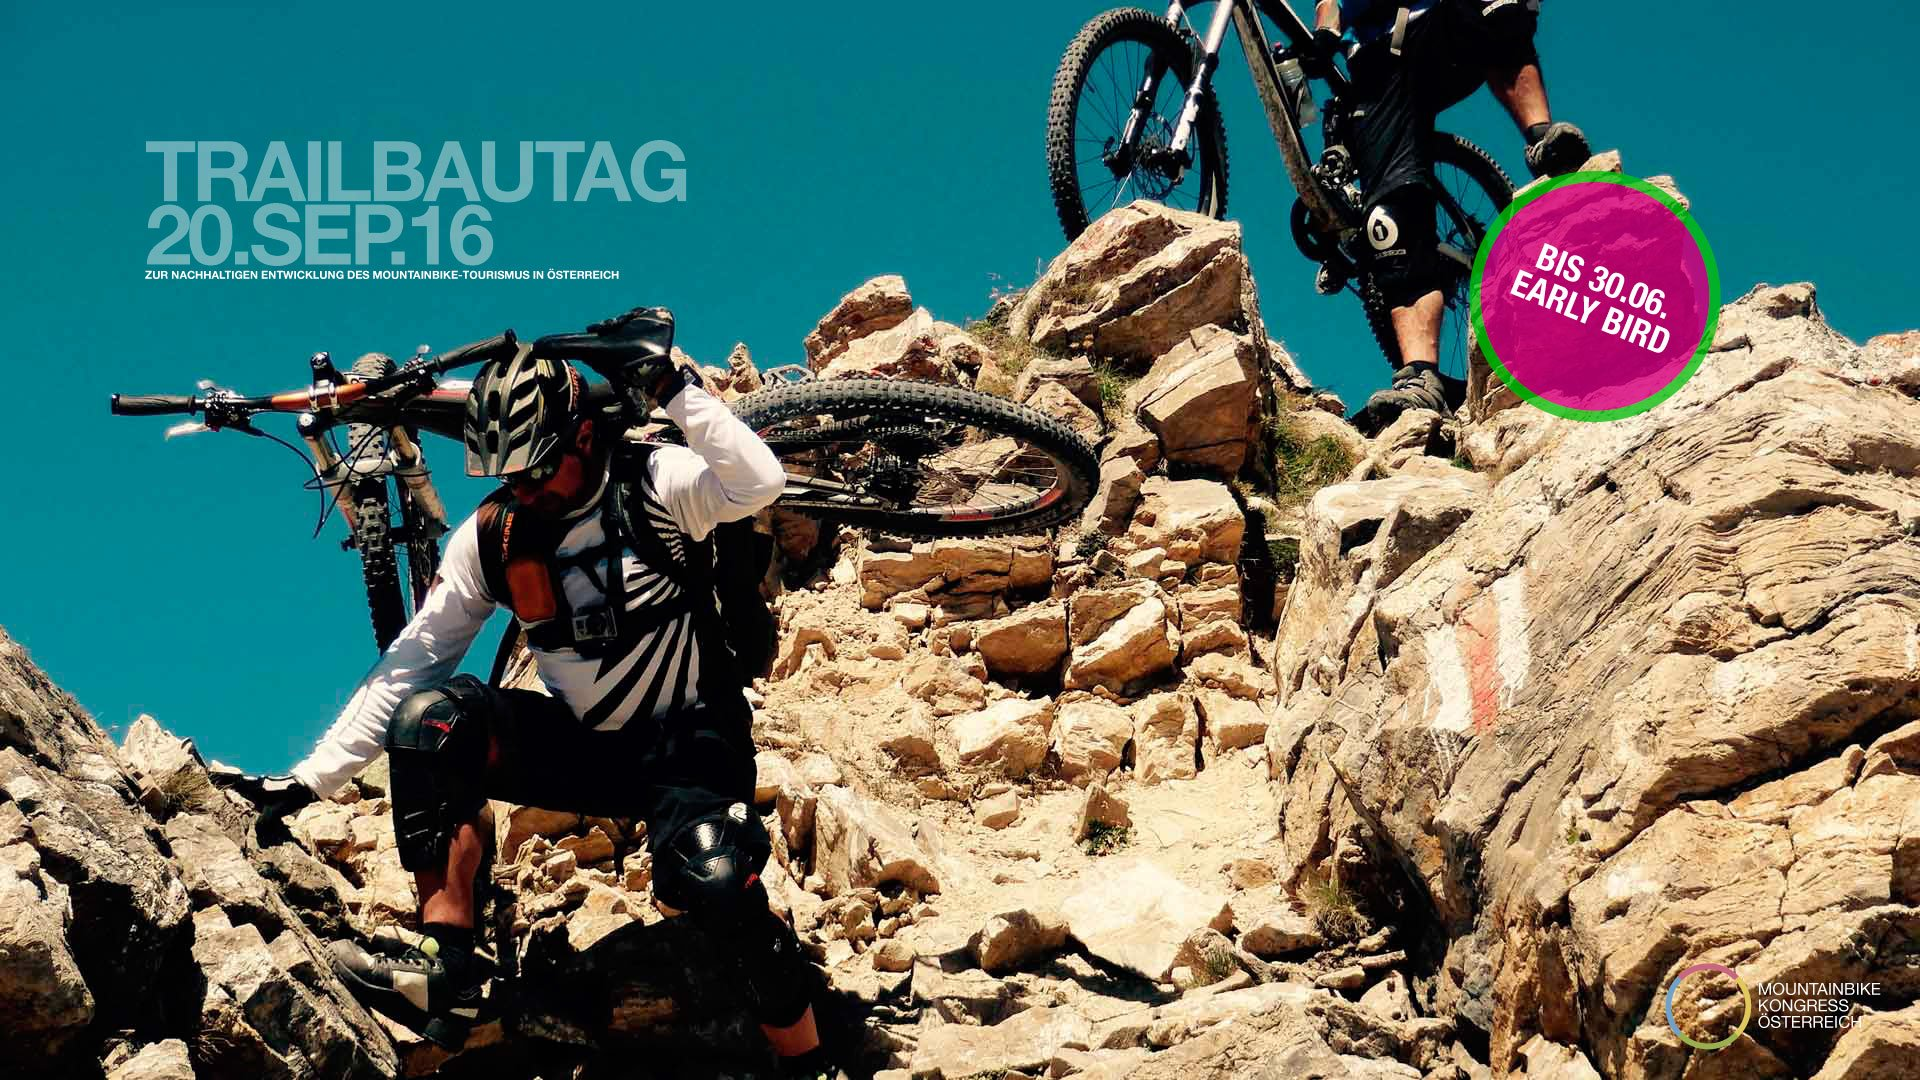 airfreshing_2016_event_mtb-kongress_saalbach_hinterglemm_trailbautag